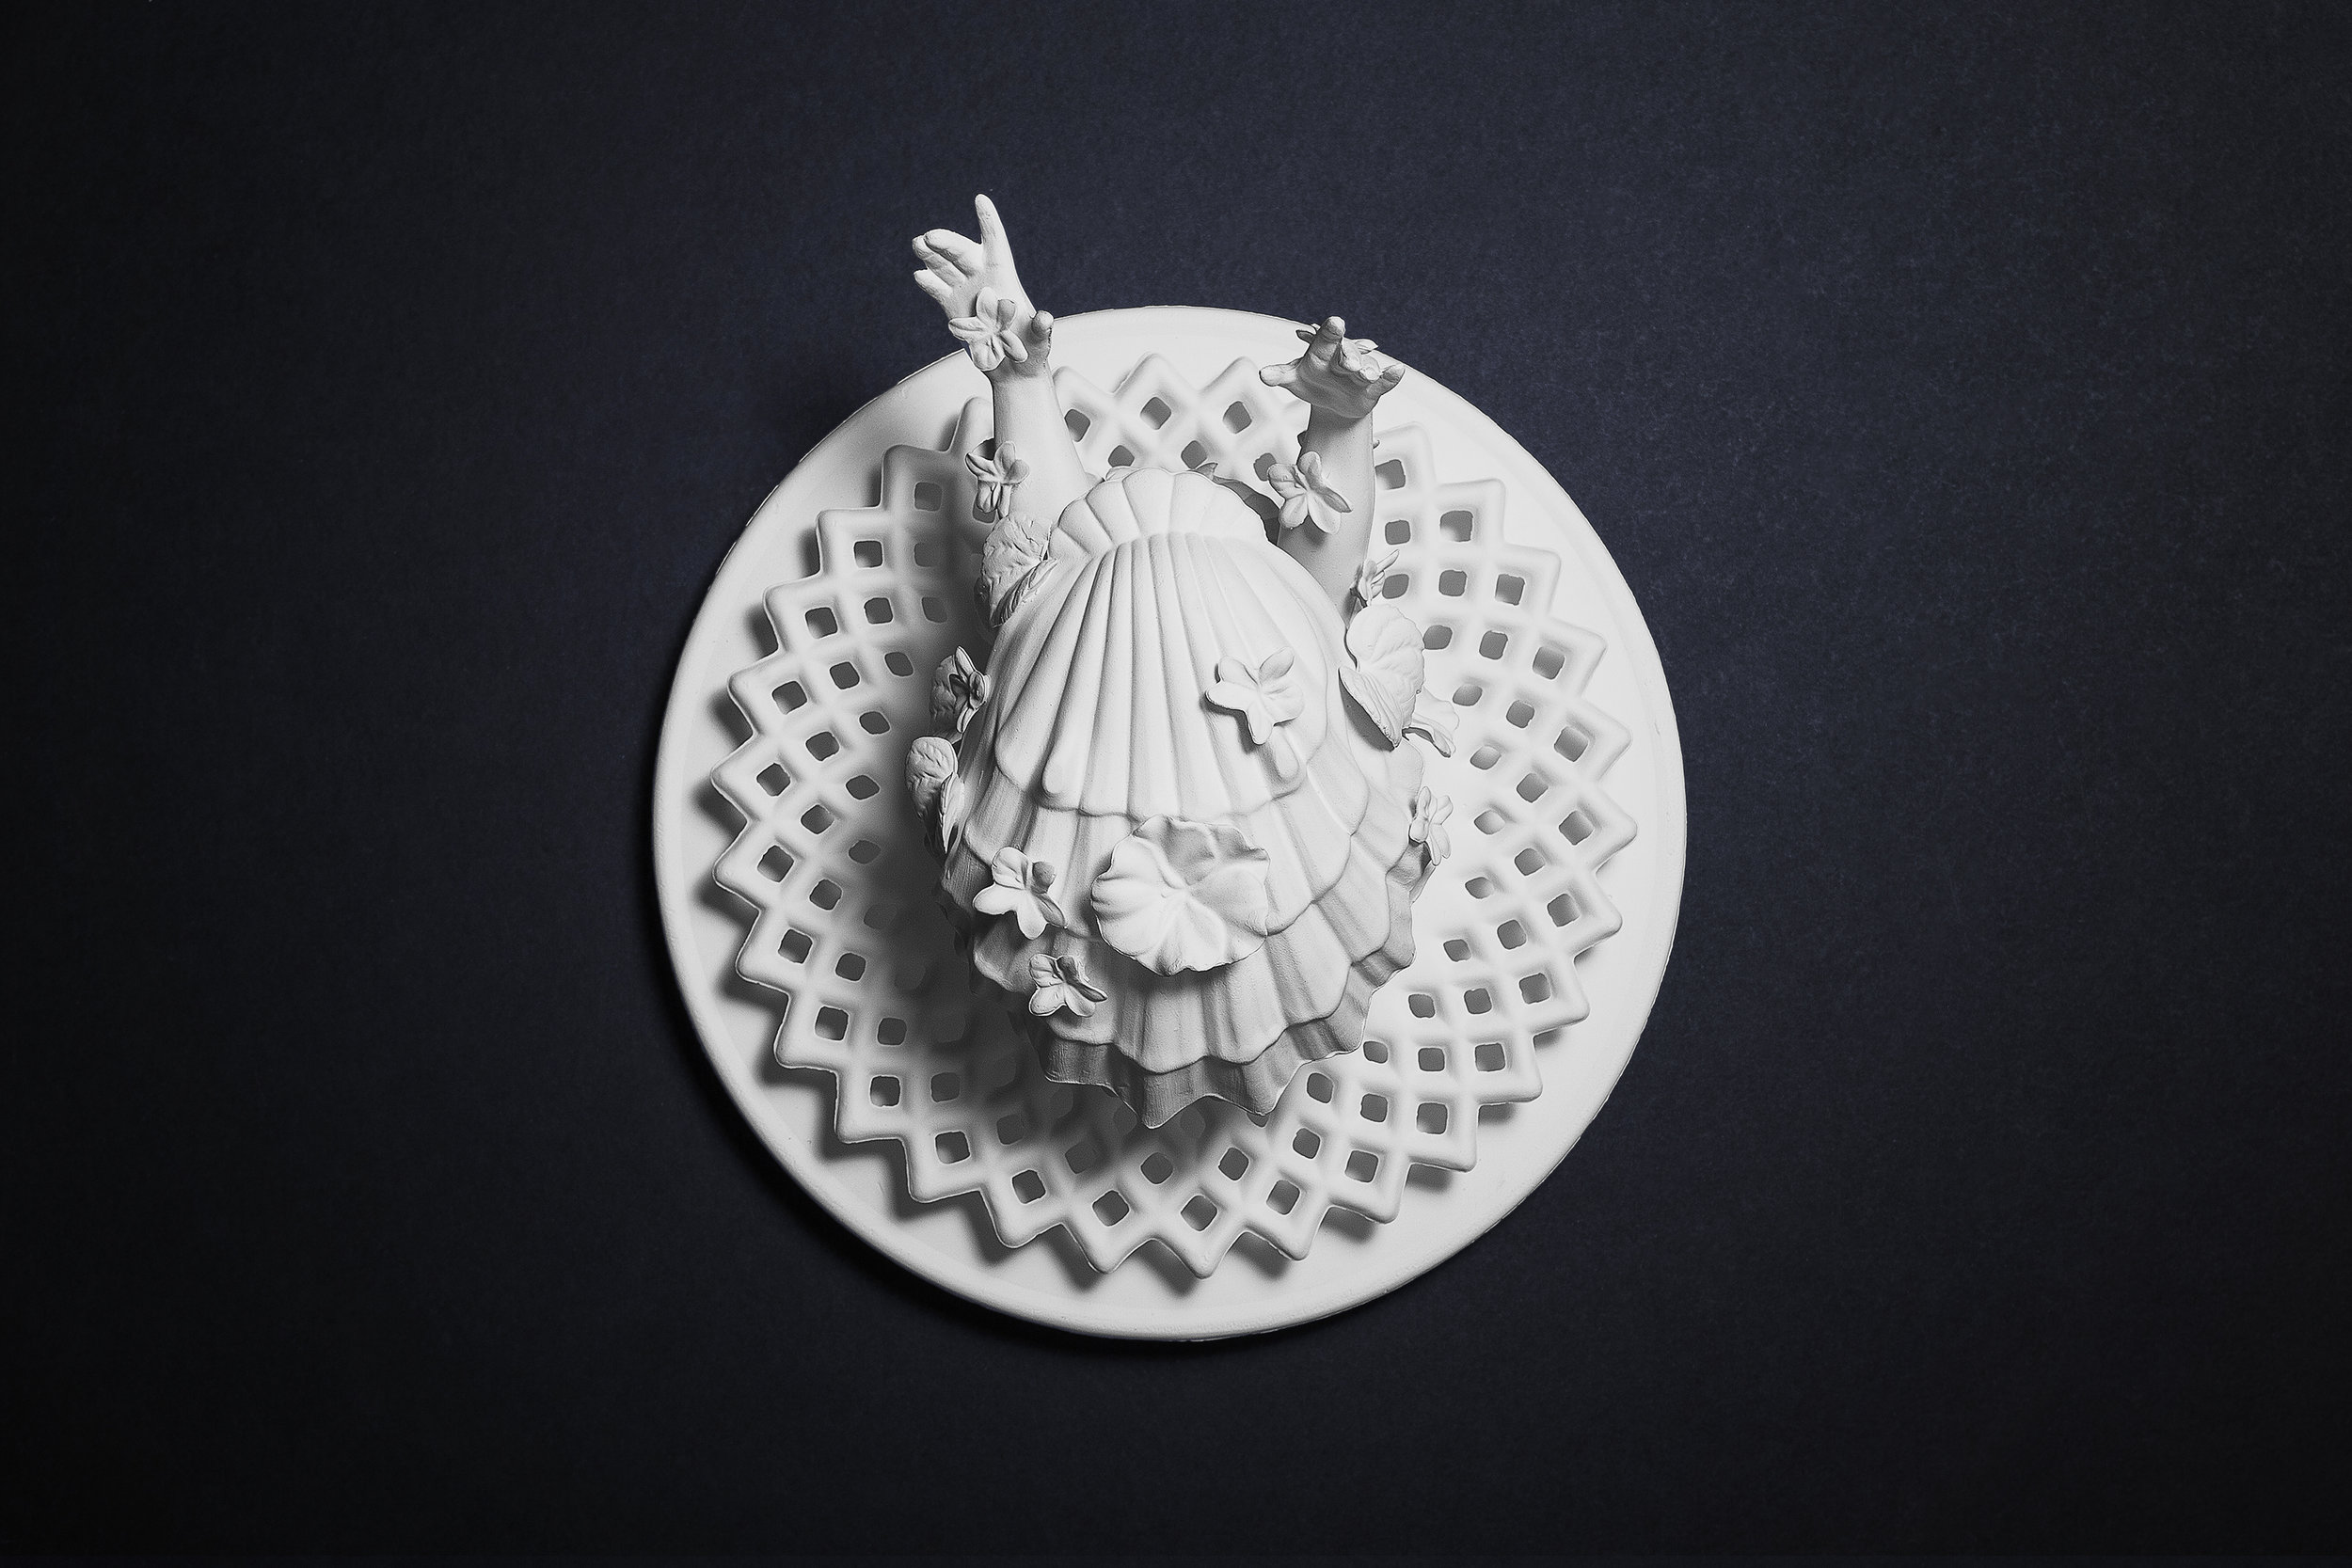 "The Death of Venus (We gon' be alright)  Medium: Slipped cast porcelain ceramic, hand build & altered forms Dimensions: 12"" diameter Year: 2019  Photography by: David Gary Lloyd"